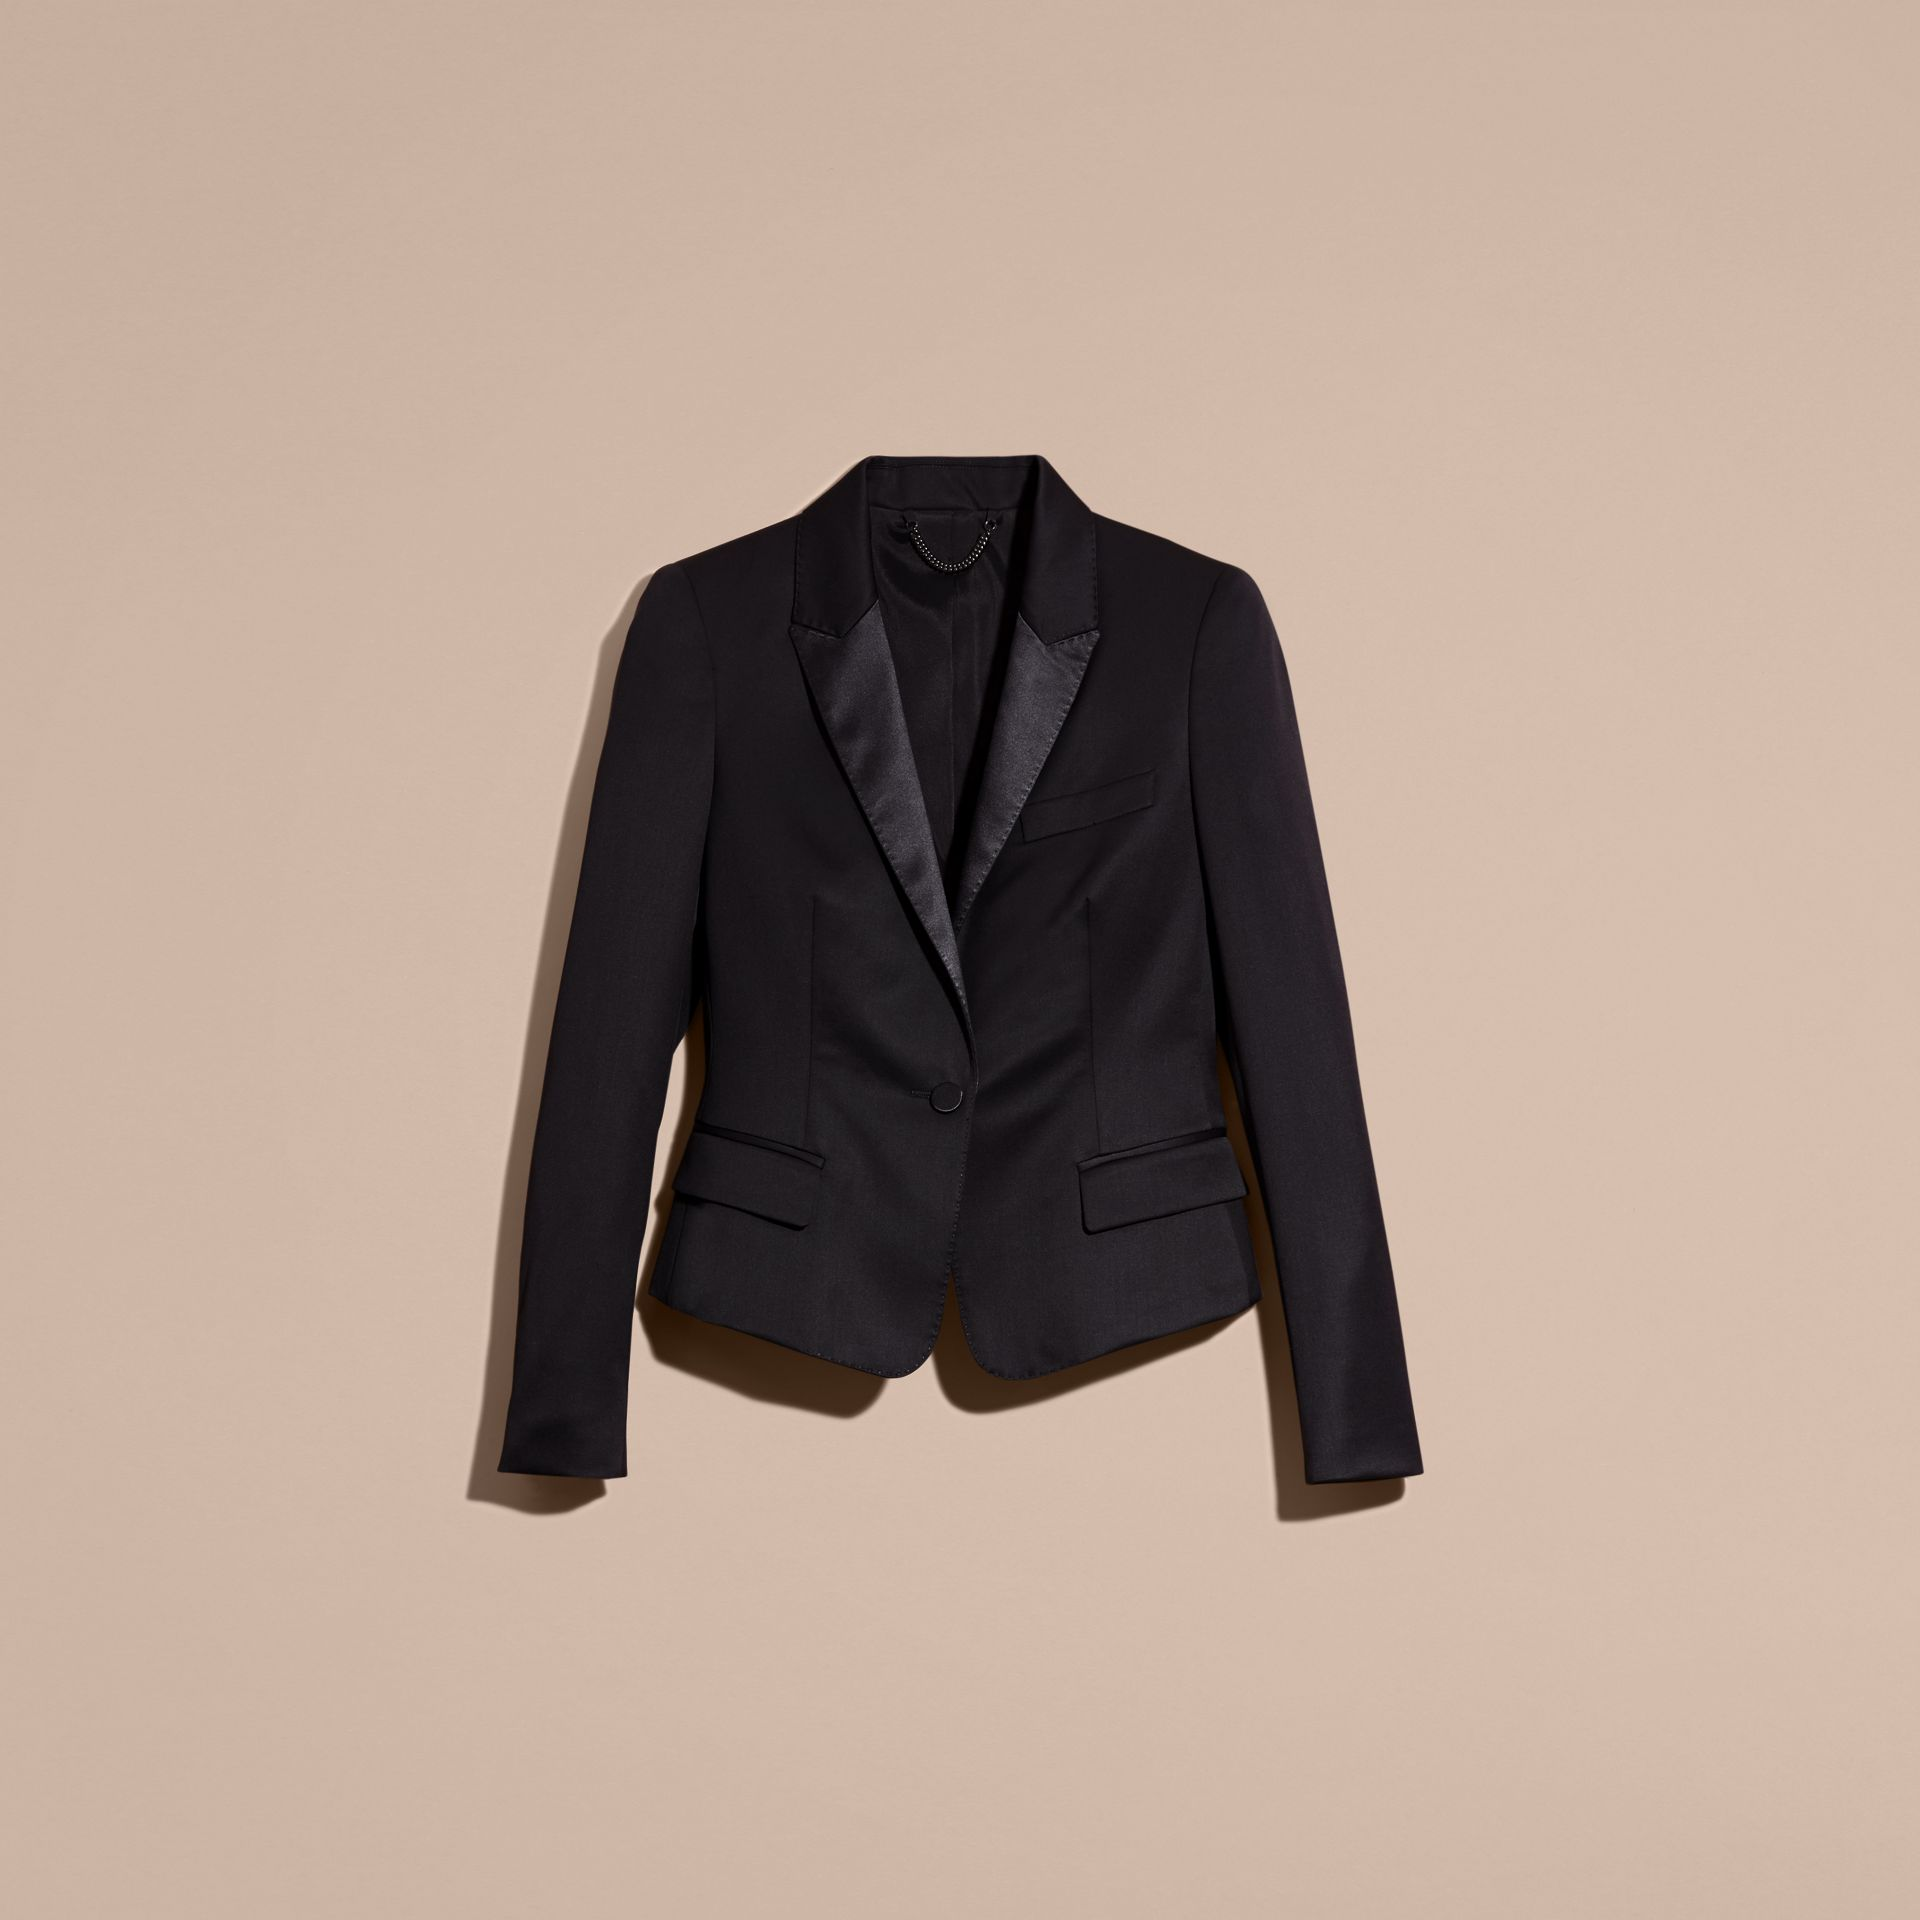 Back Peplum Wool Blend Tuxedo Jacket - Women | Burberry - gallery image 4